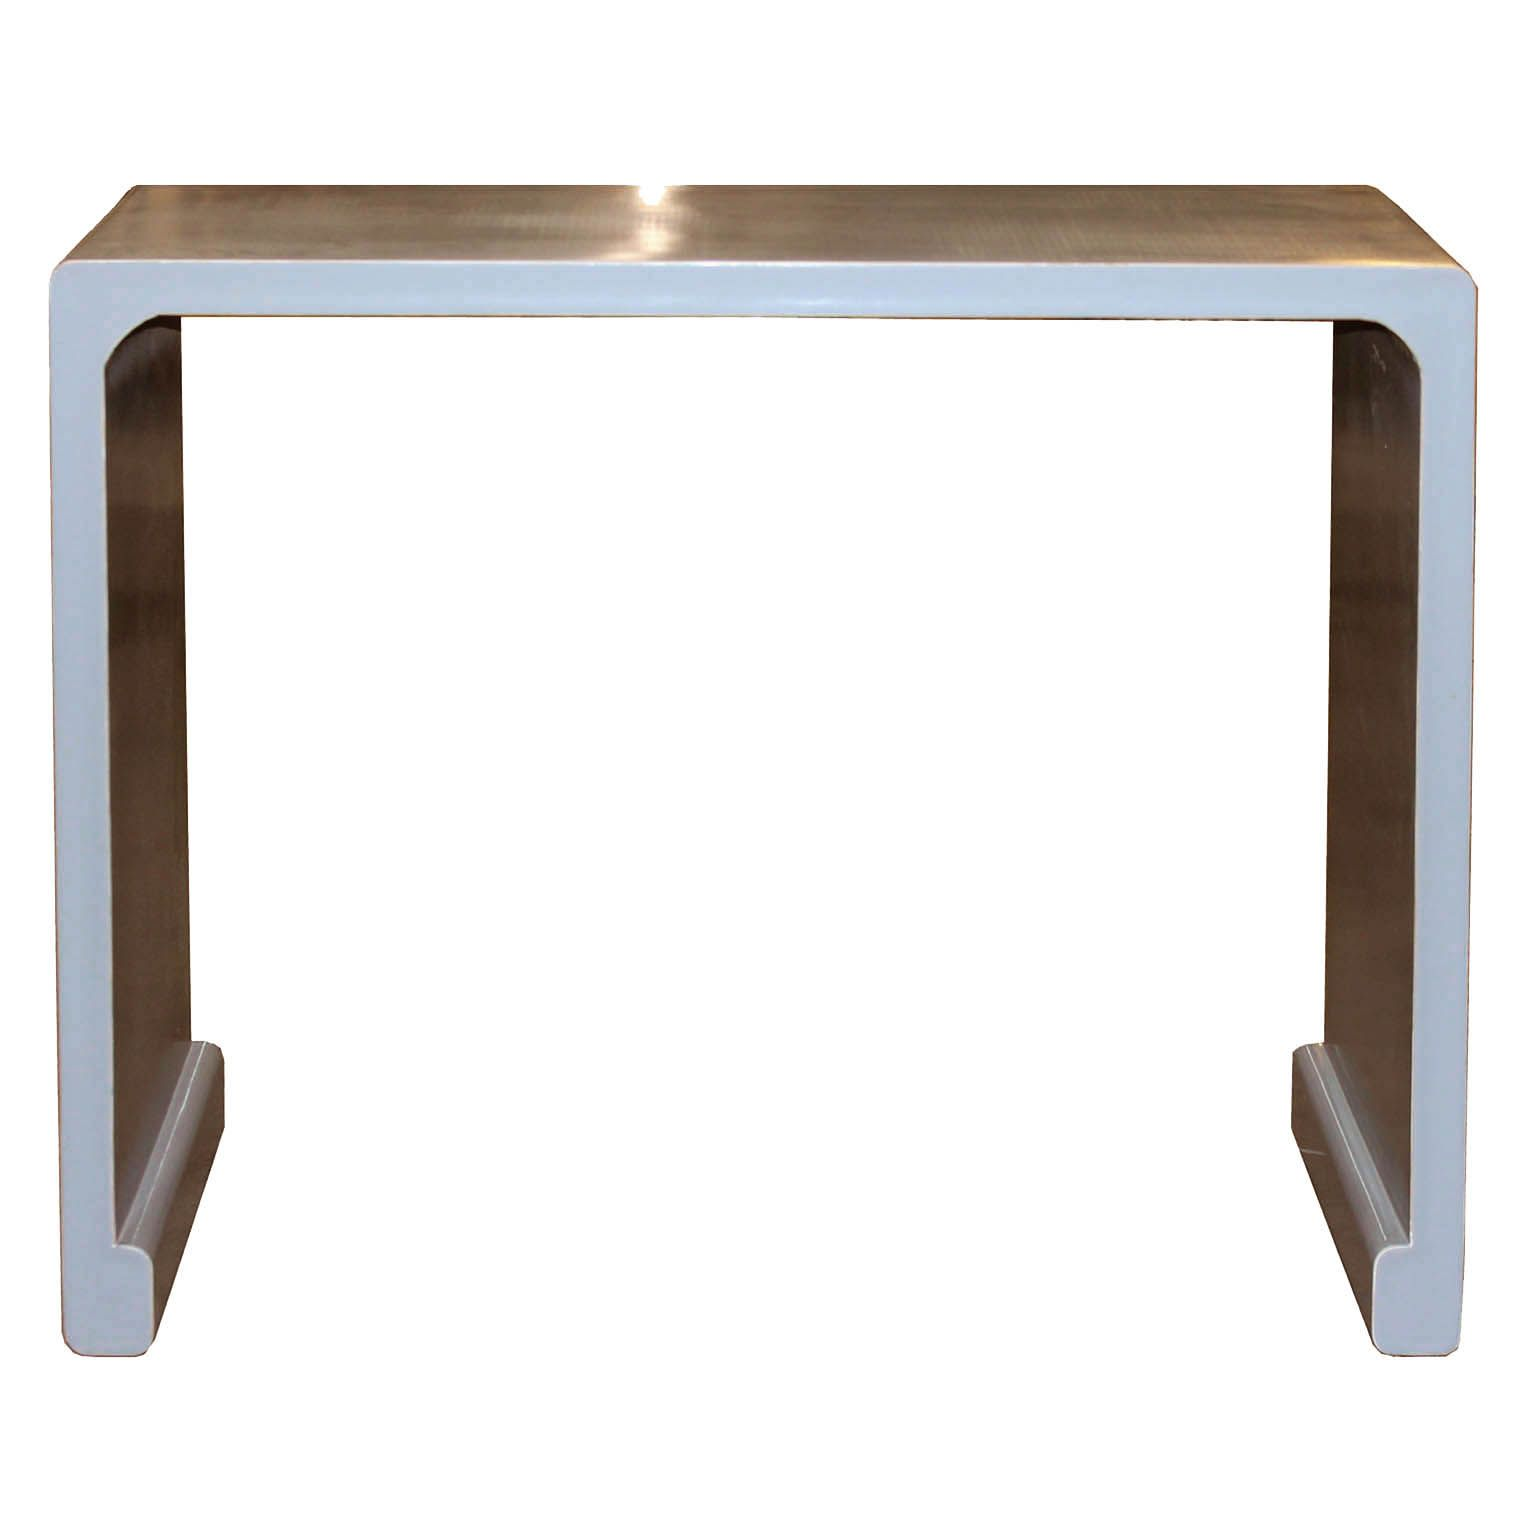 how to clean lacquer furniture. Contemporary Gray Lacquer Waterfall Console Table With Elegant Clean Lines, Scroll Feet And Exposed Wood How To Furniture E